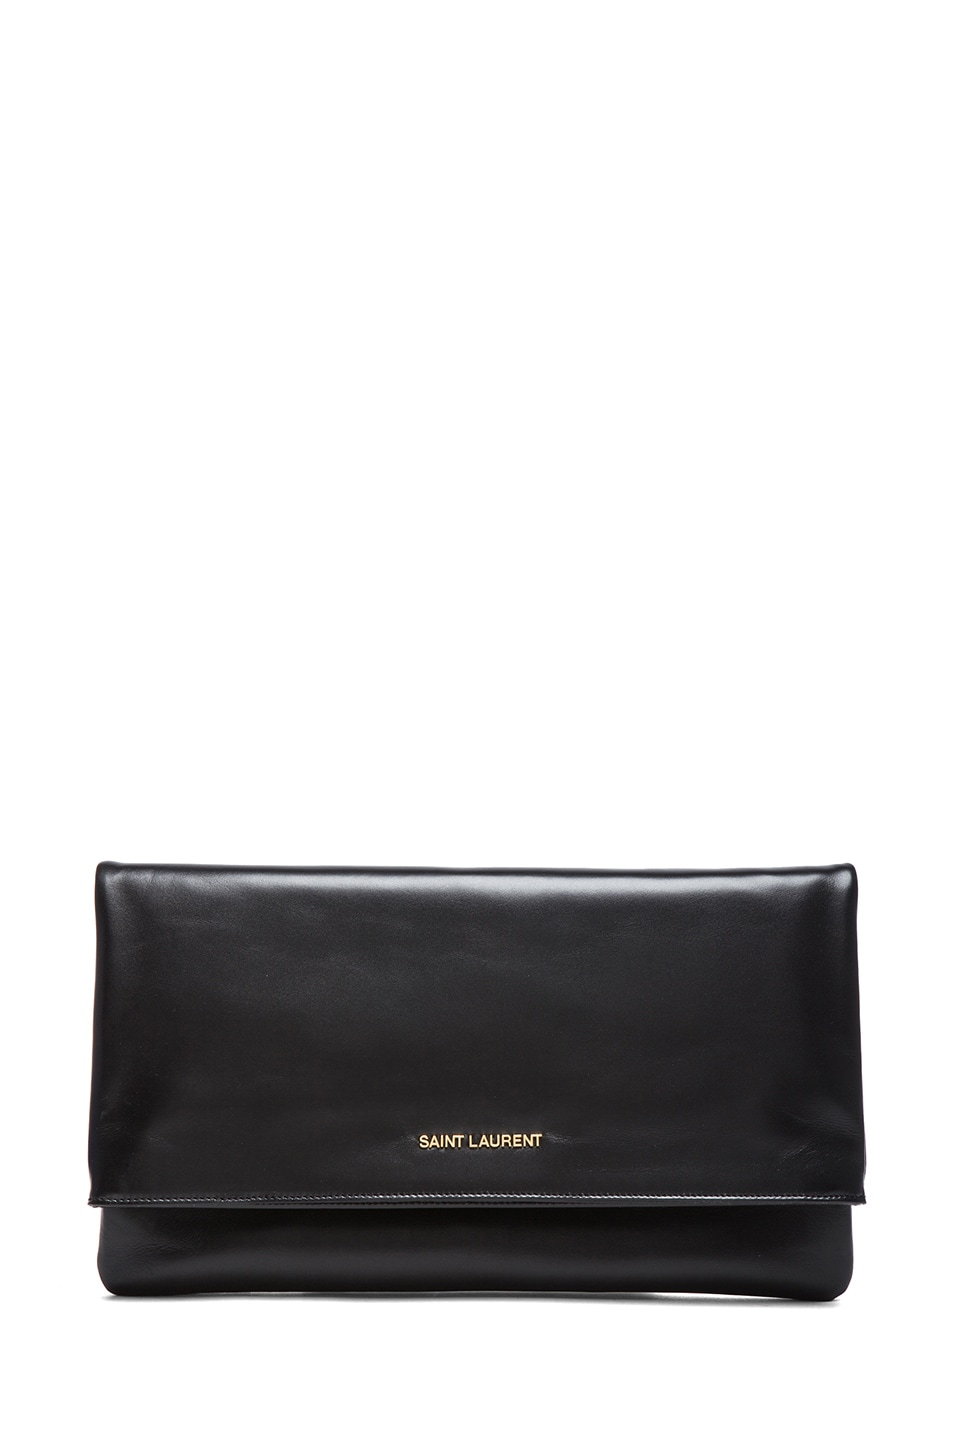 Image 1 of Saint Laurent Large Letters Foldover Clutch in Black